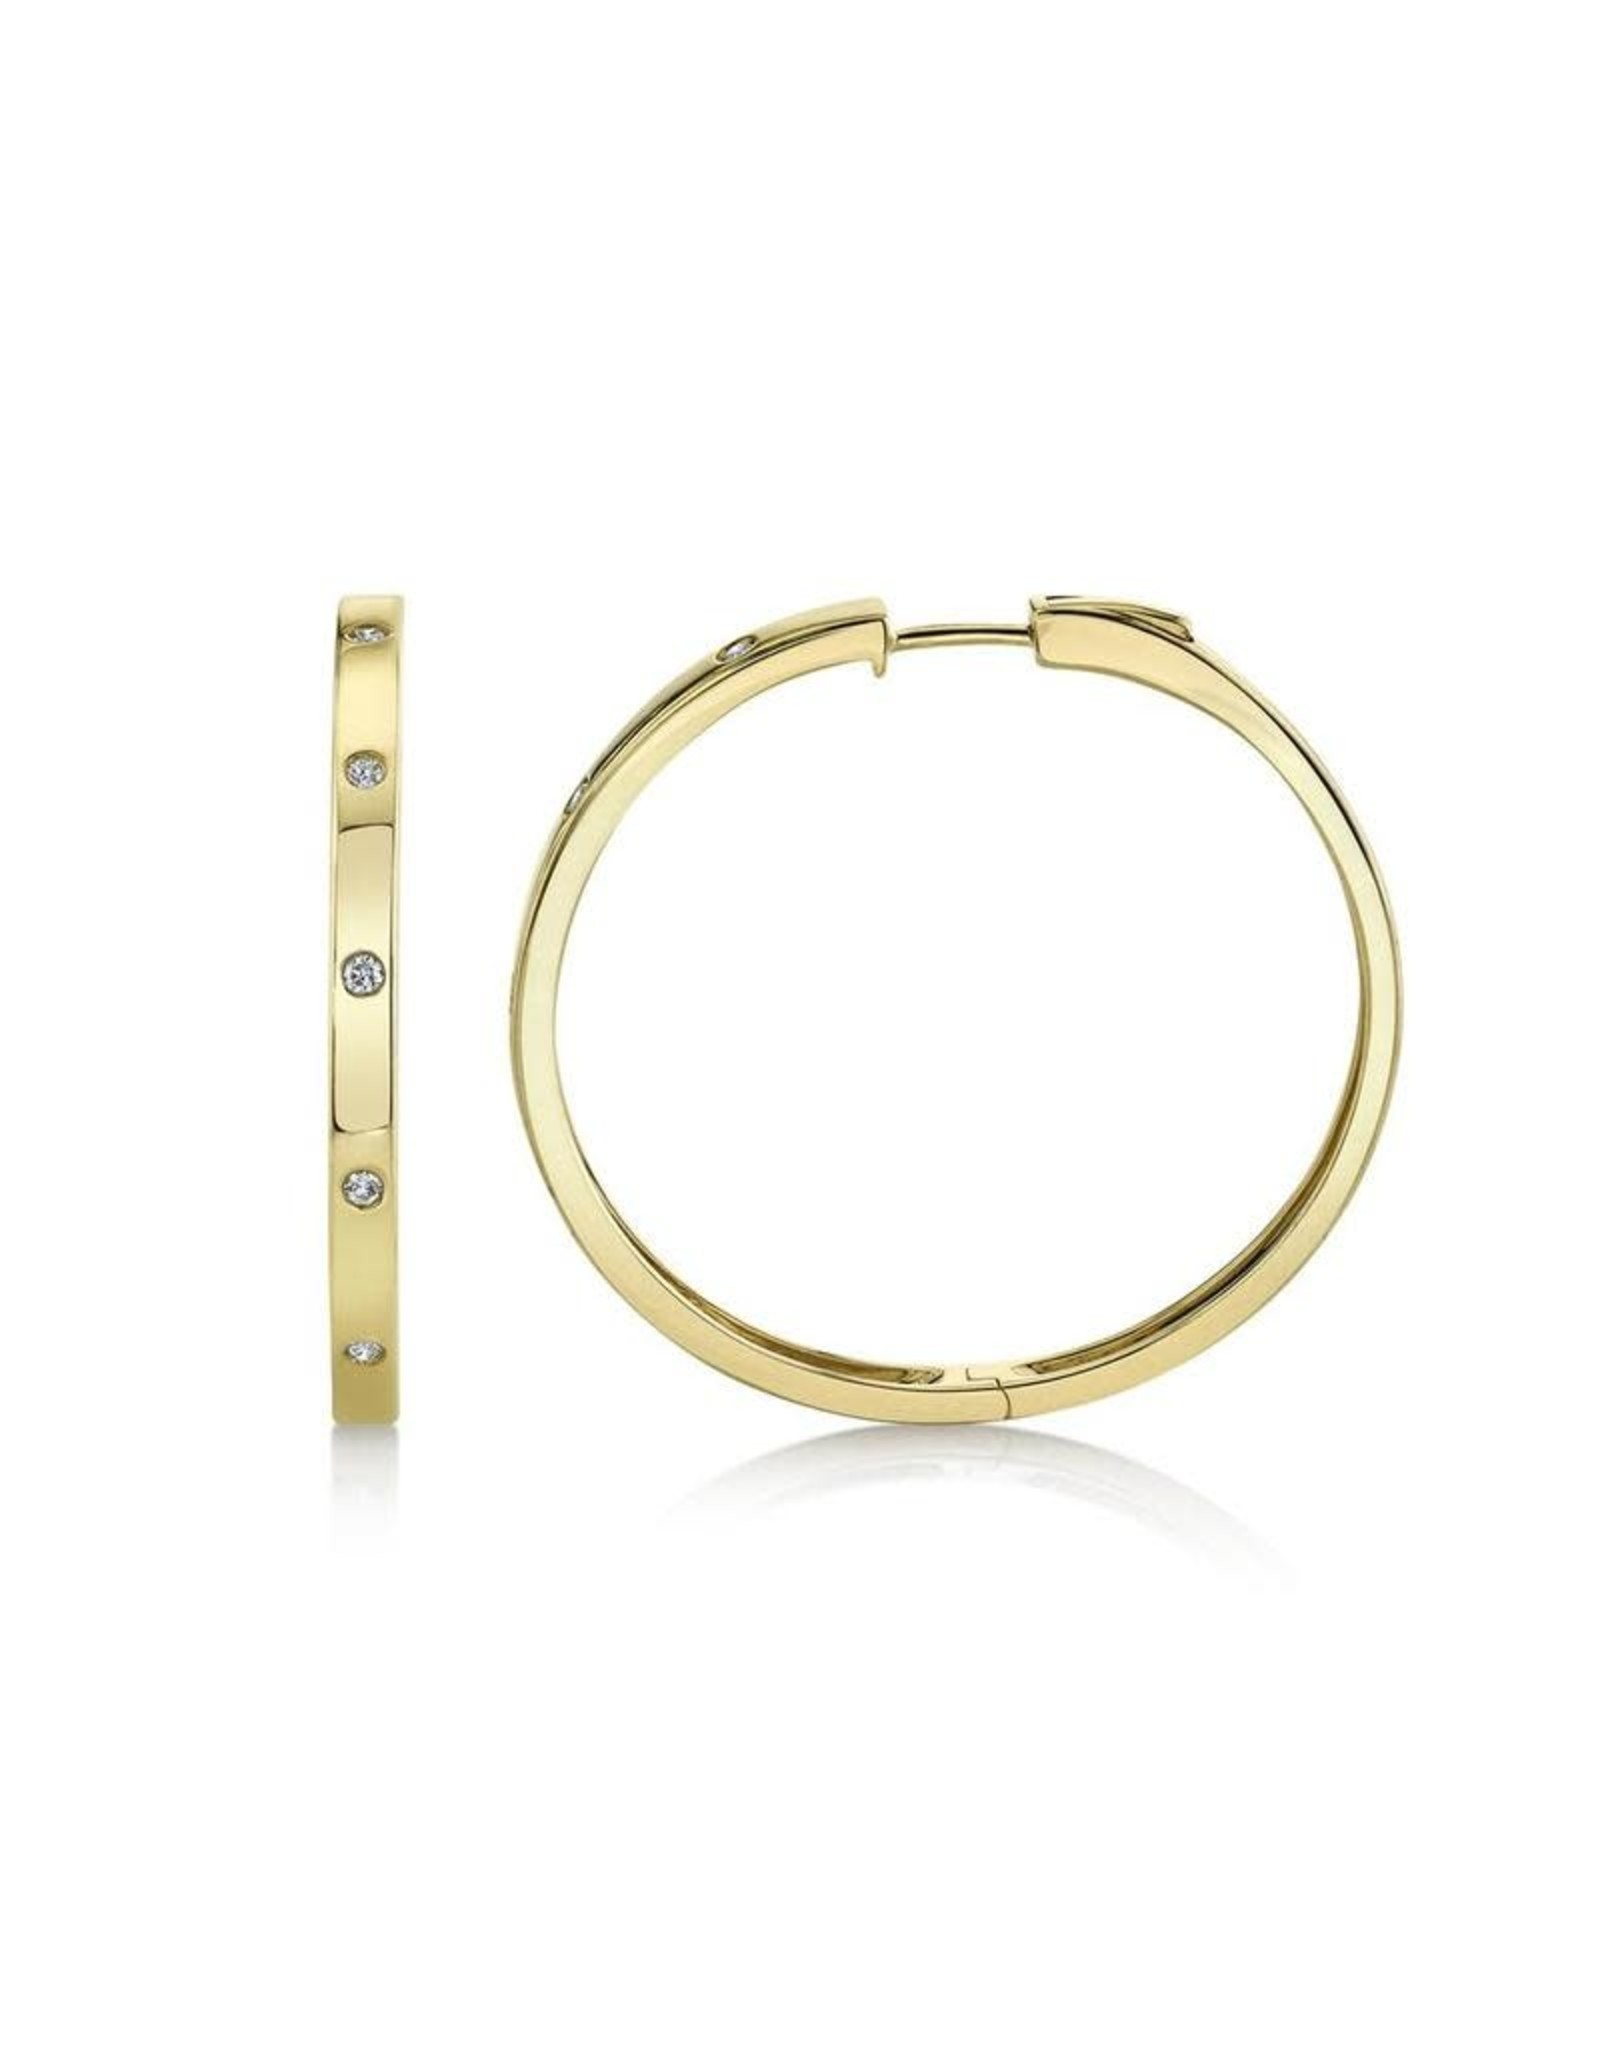 14K Yellow Gold Diamond Hoop Earrings, D: 0.19ct